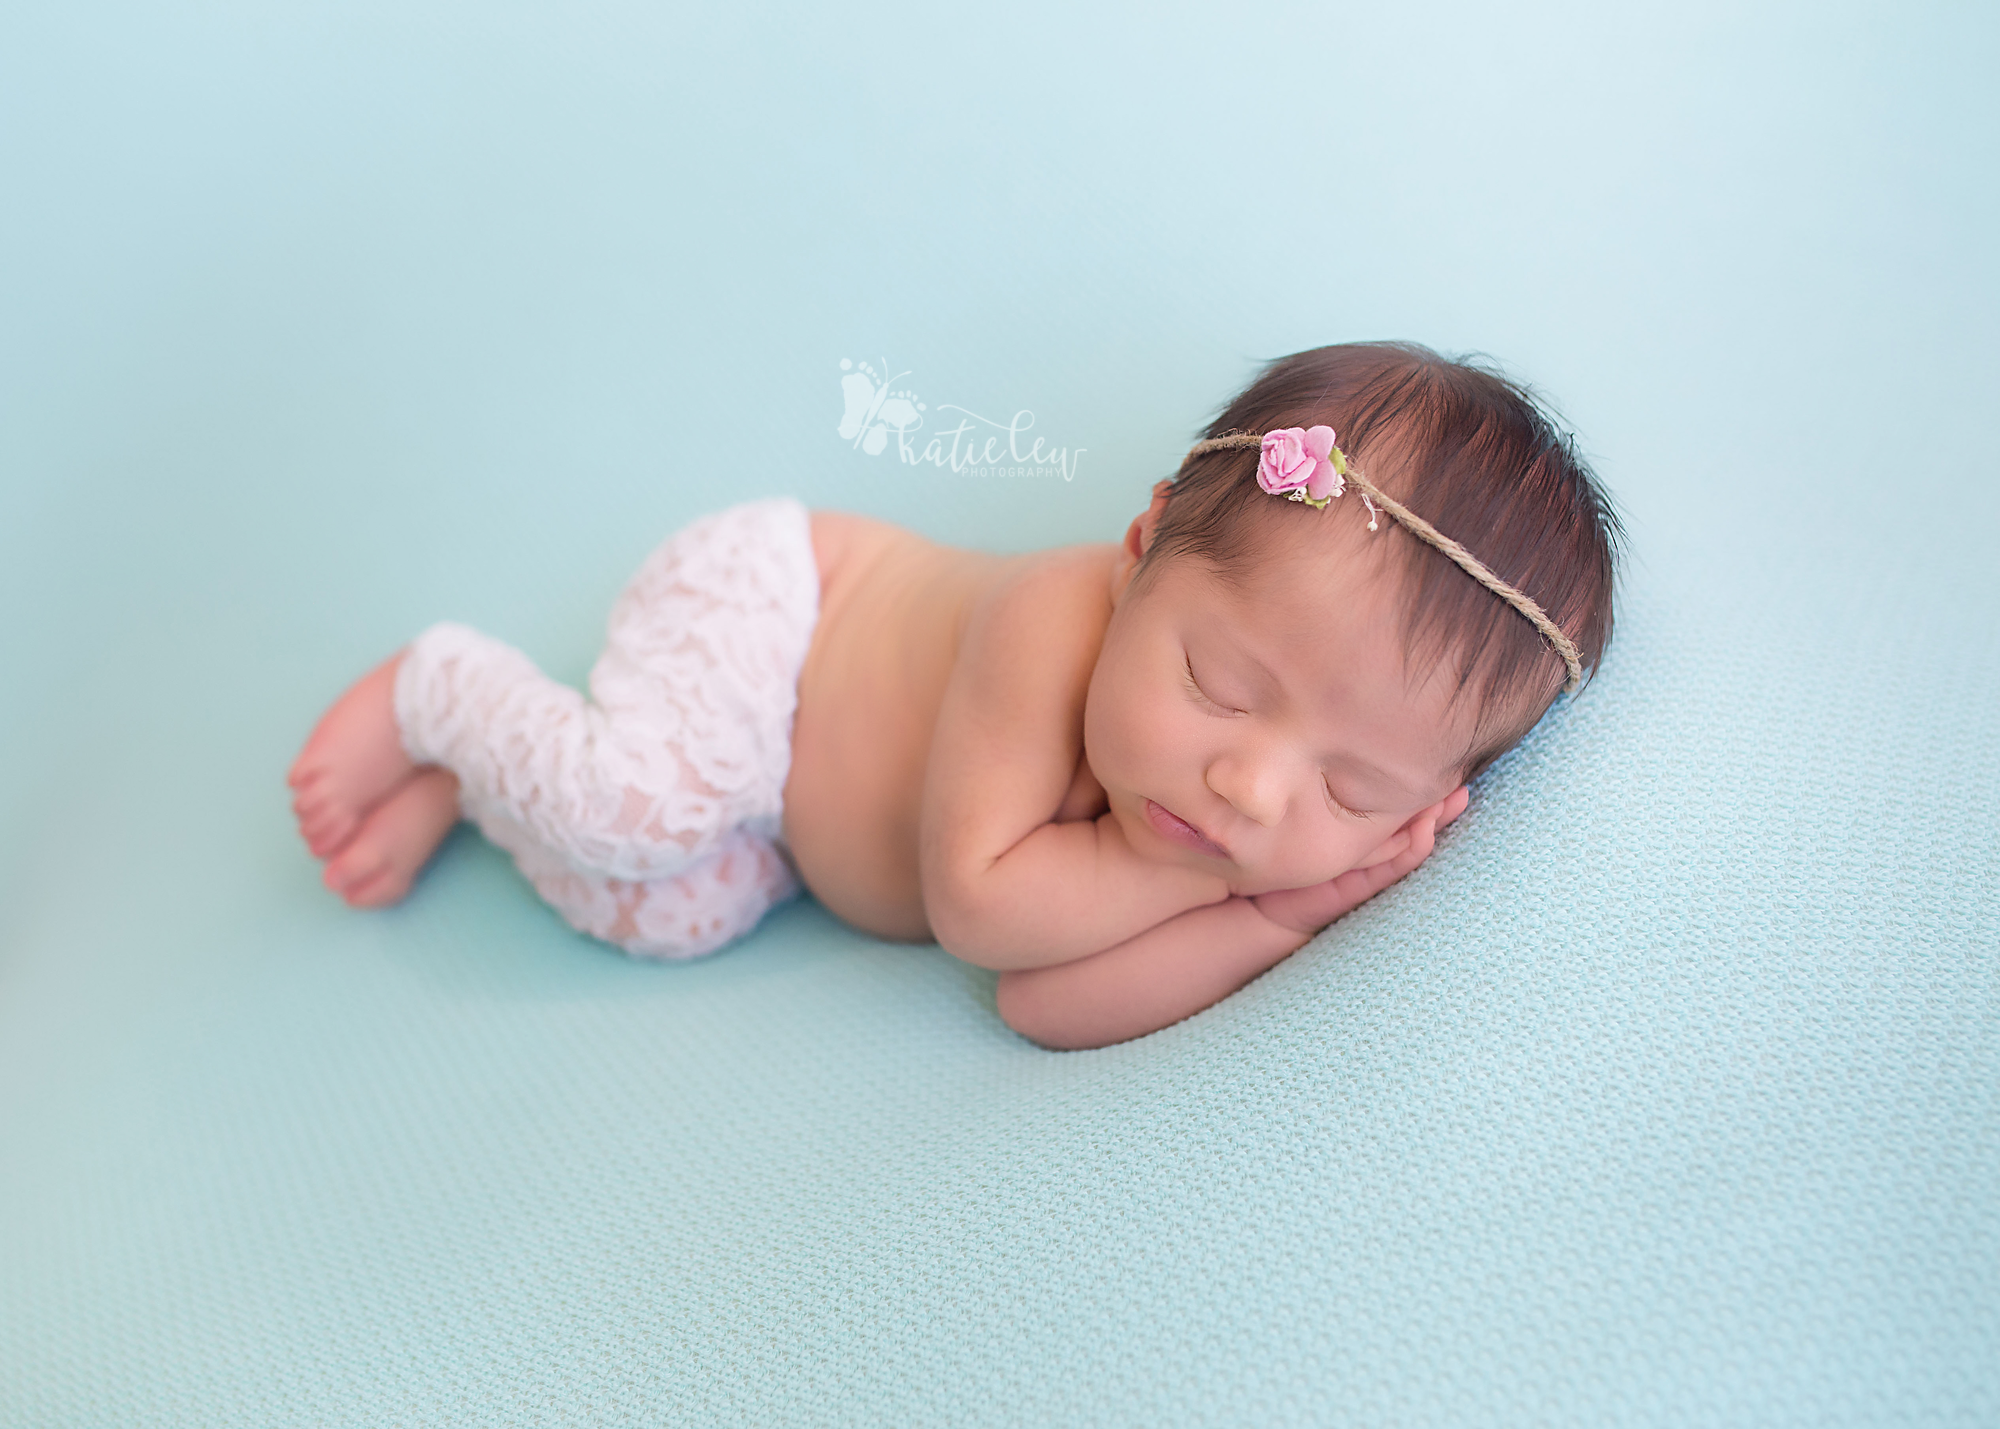 Newborn baby girl snuggled on a blue blanket